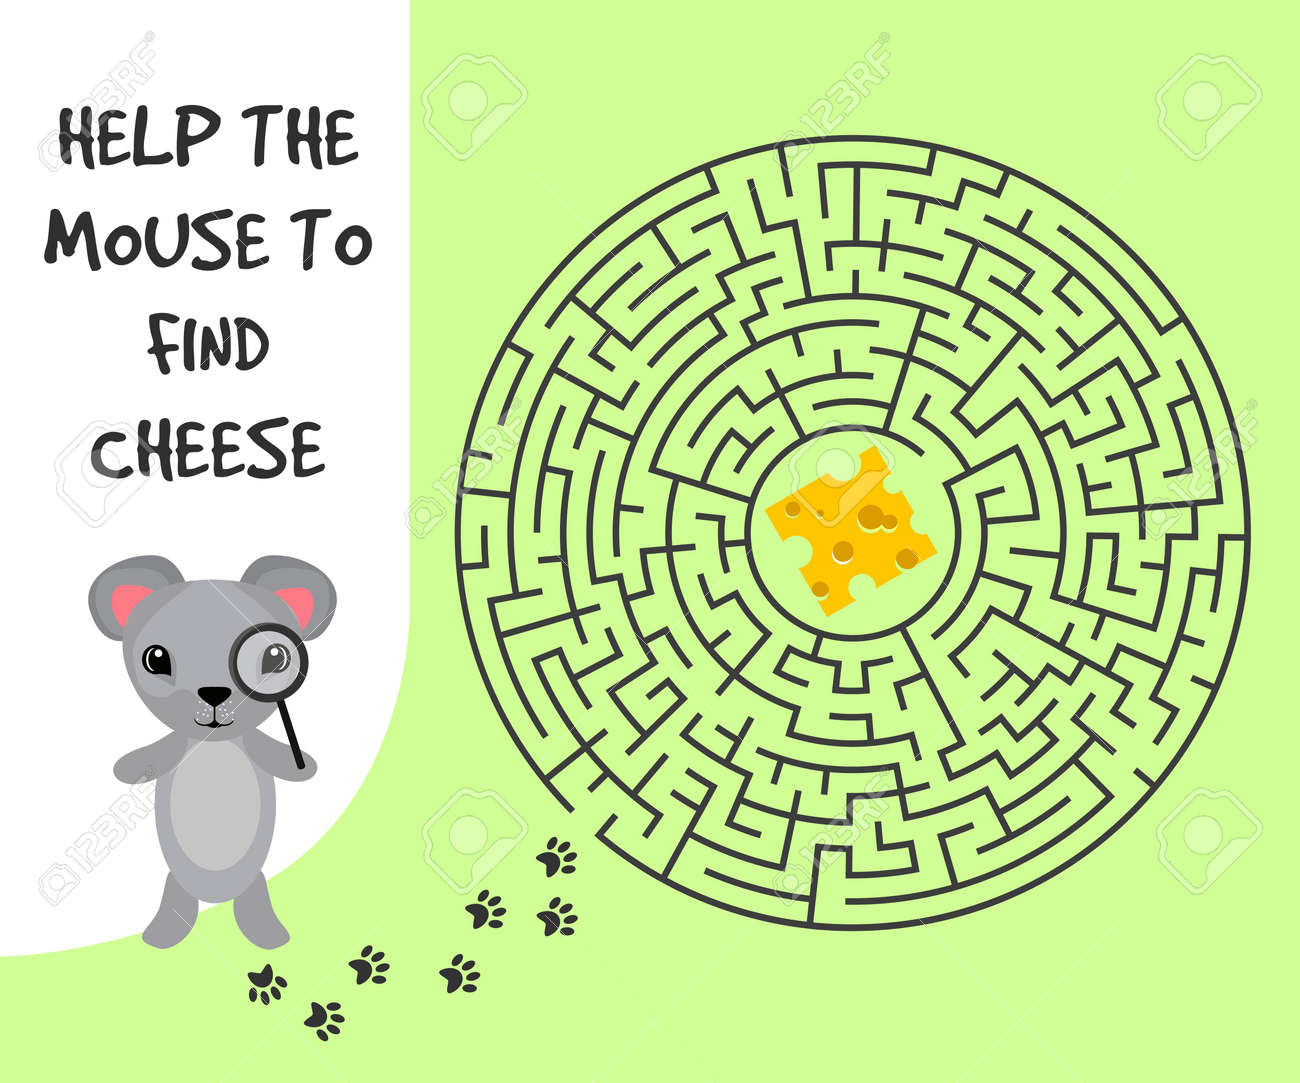 circular education maze or labyrinth game for children with mouse